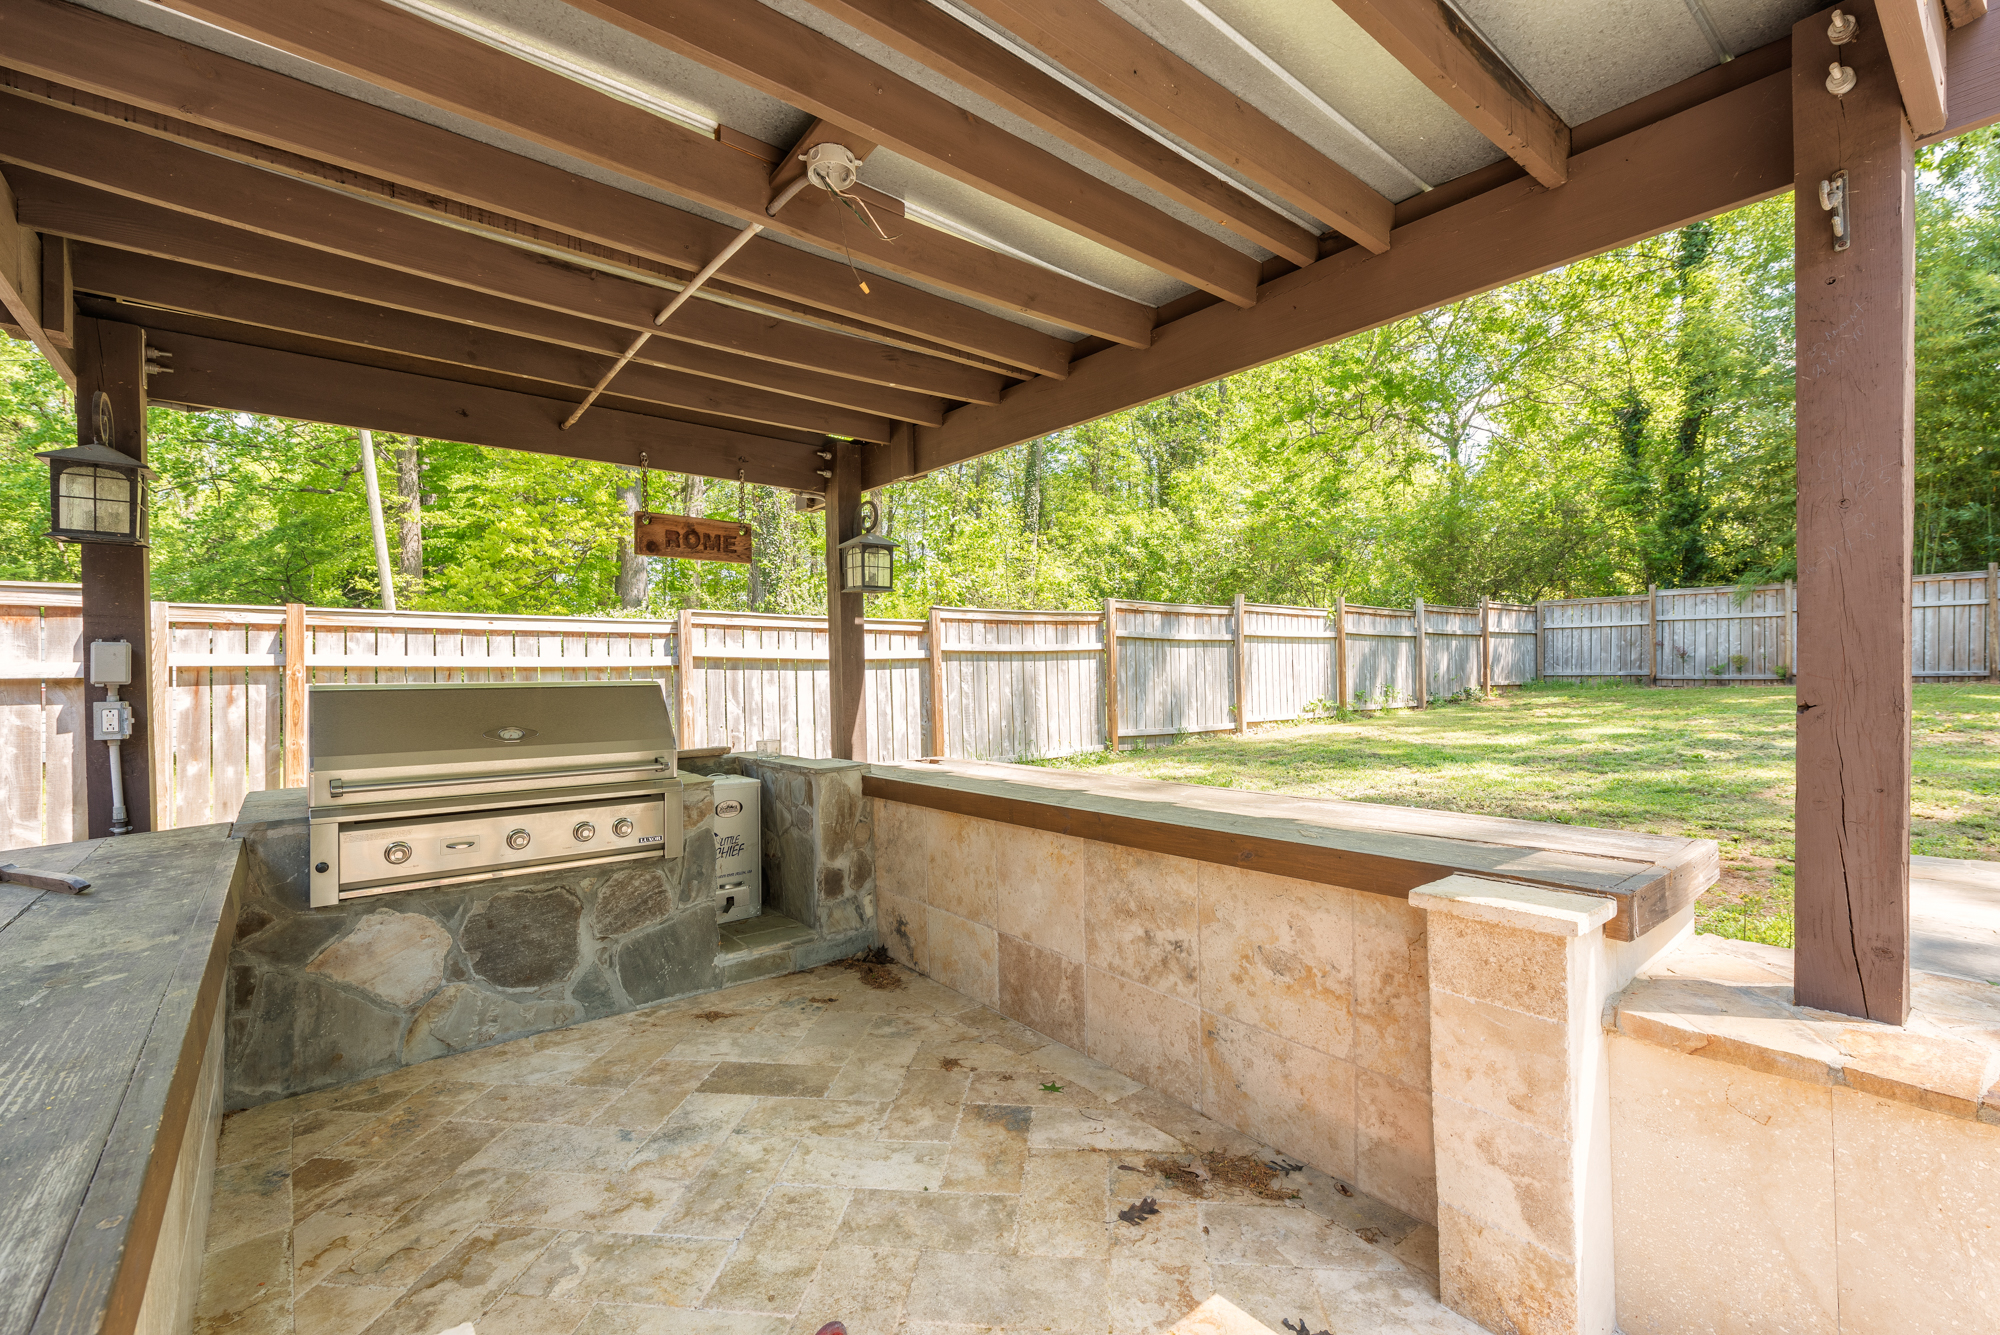 Covered grilling patio